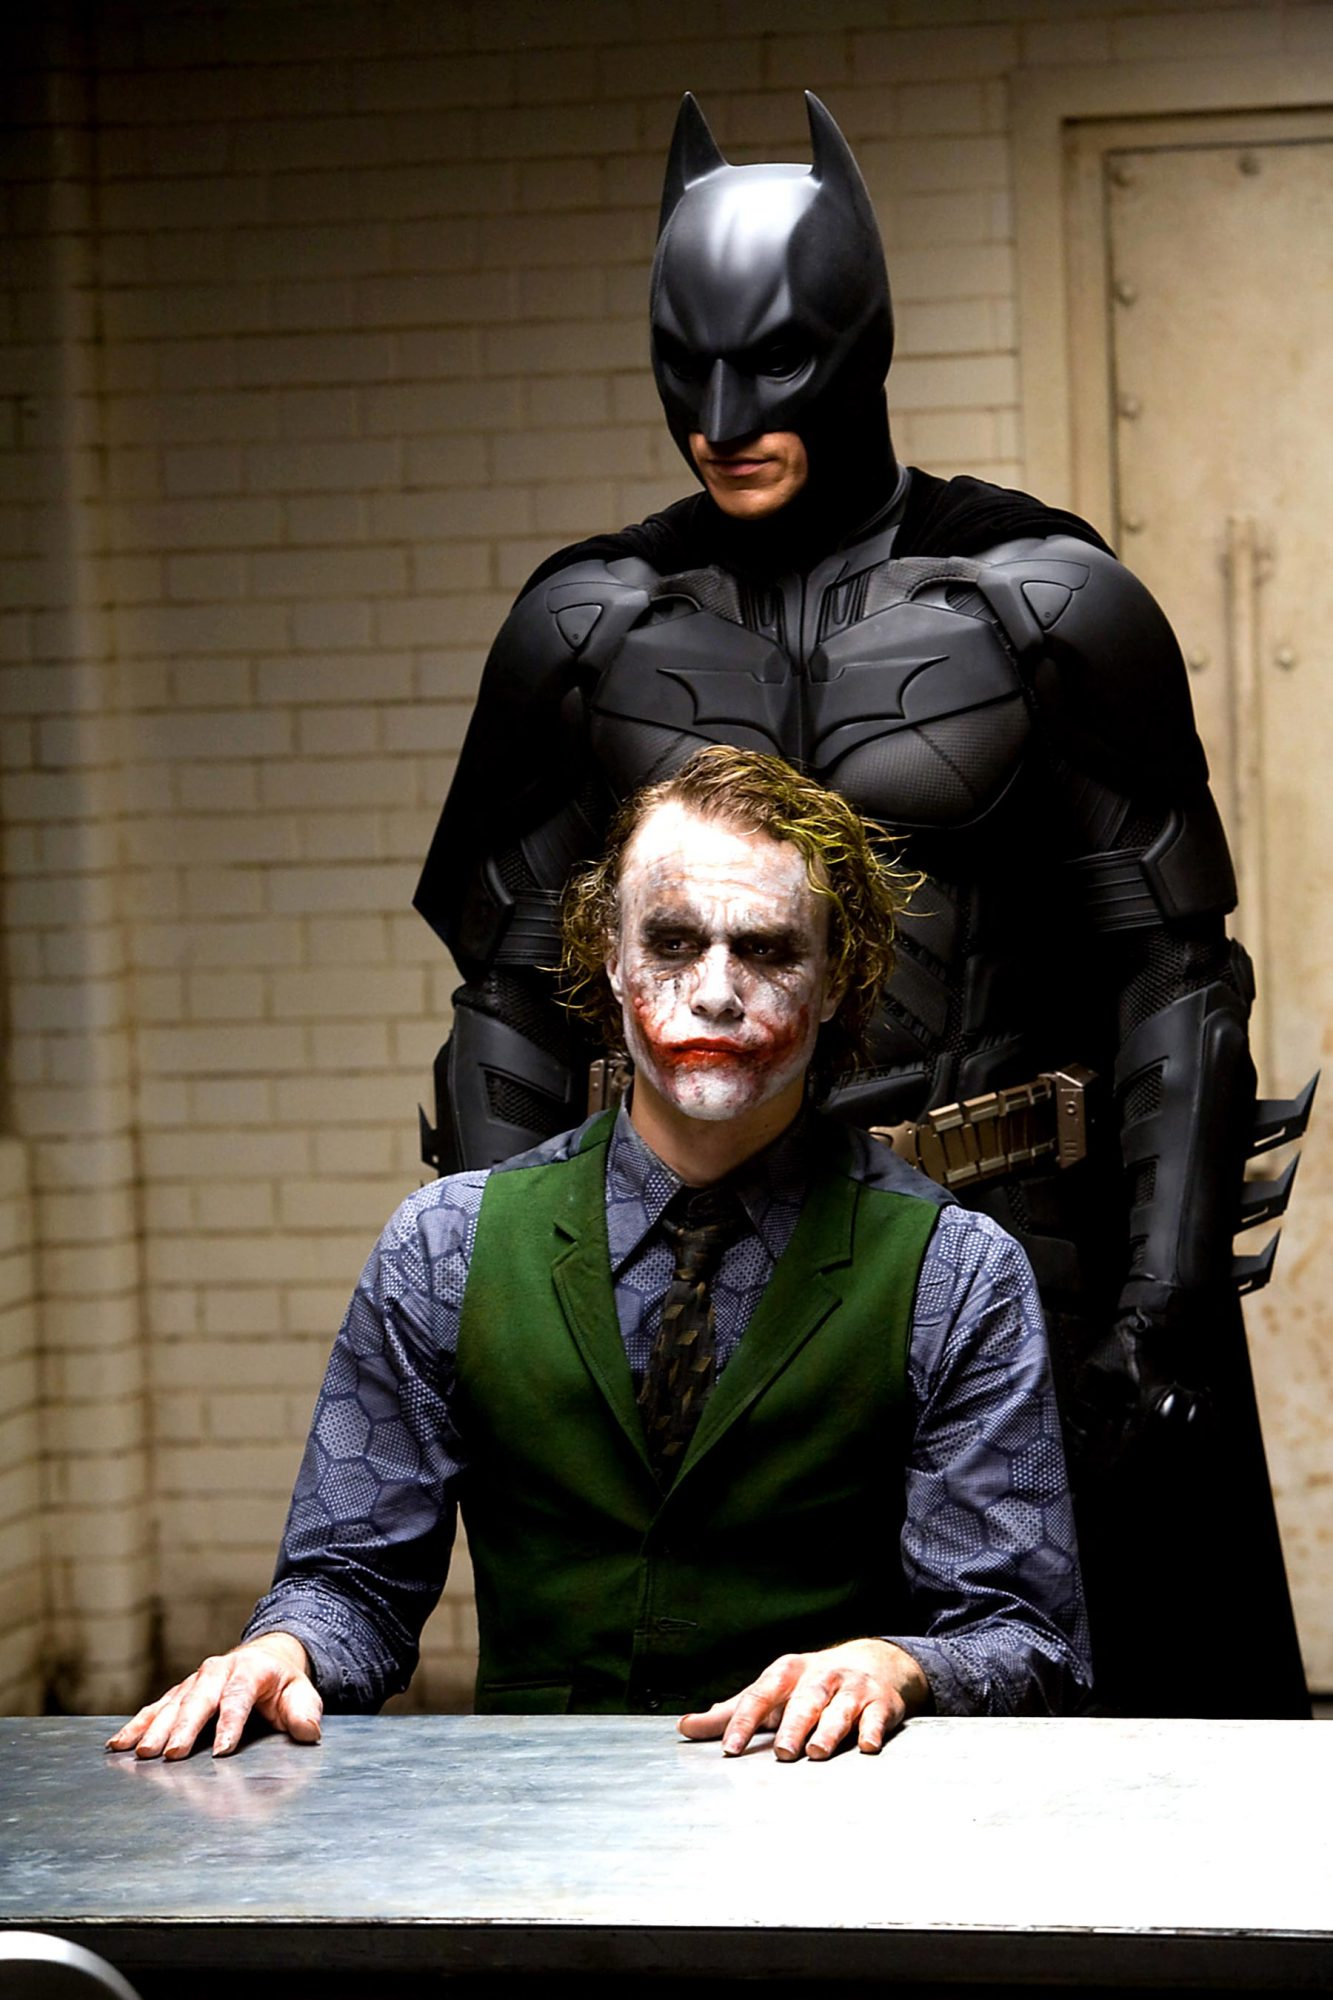 THE DARK KNIGHT, Heath Ledger, Christian Bale, 2008. ©Warner Bros./Courtesy Everett Collection